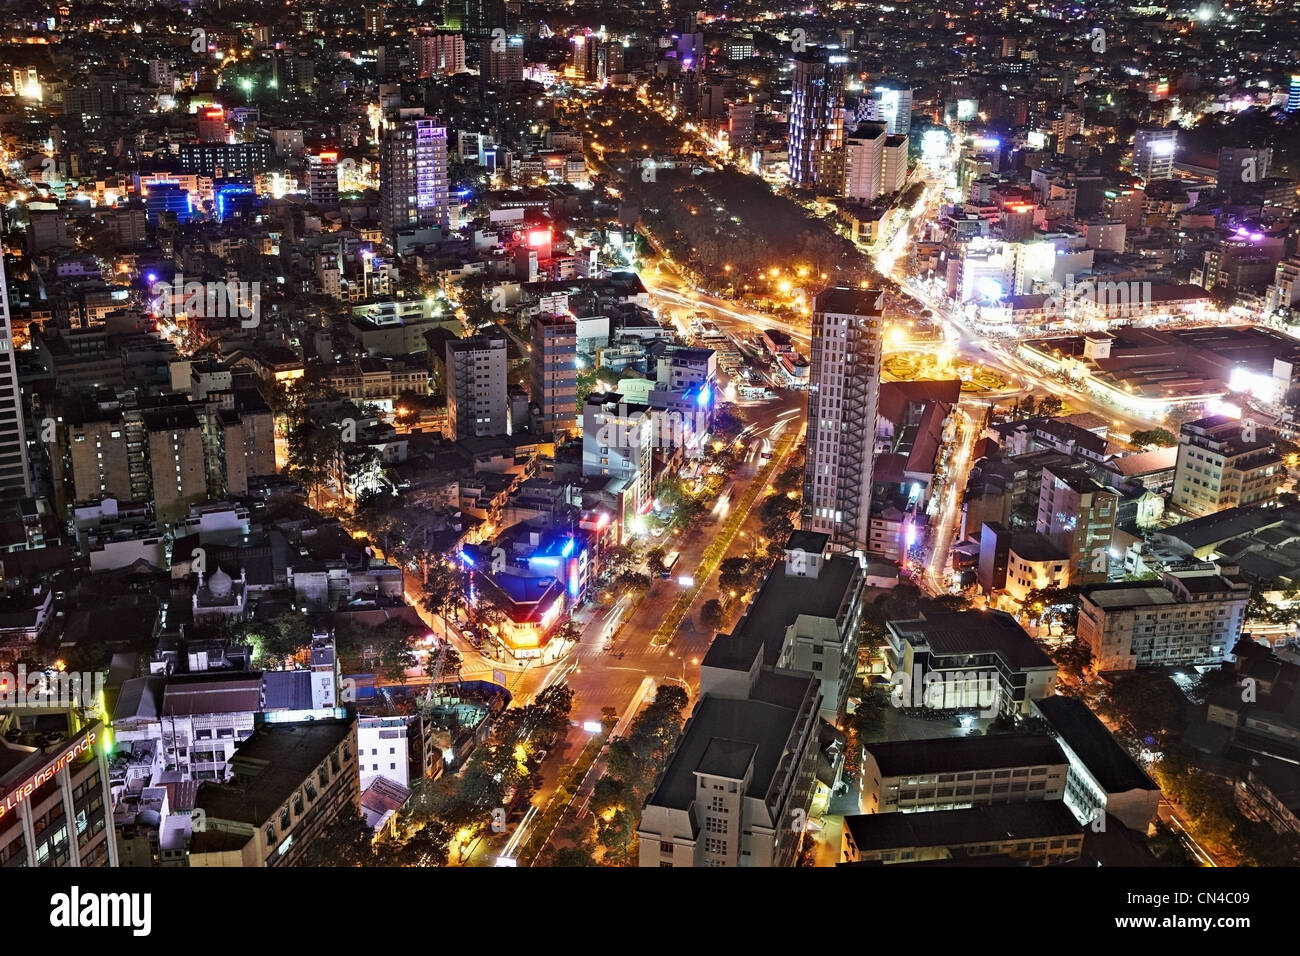 Aerial view of Ho Chi Minh City, District 1 at night with Ben Thanh Market, Vietnam - Stock Image